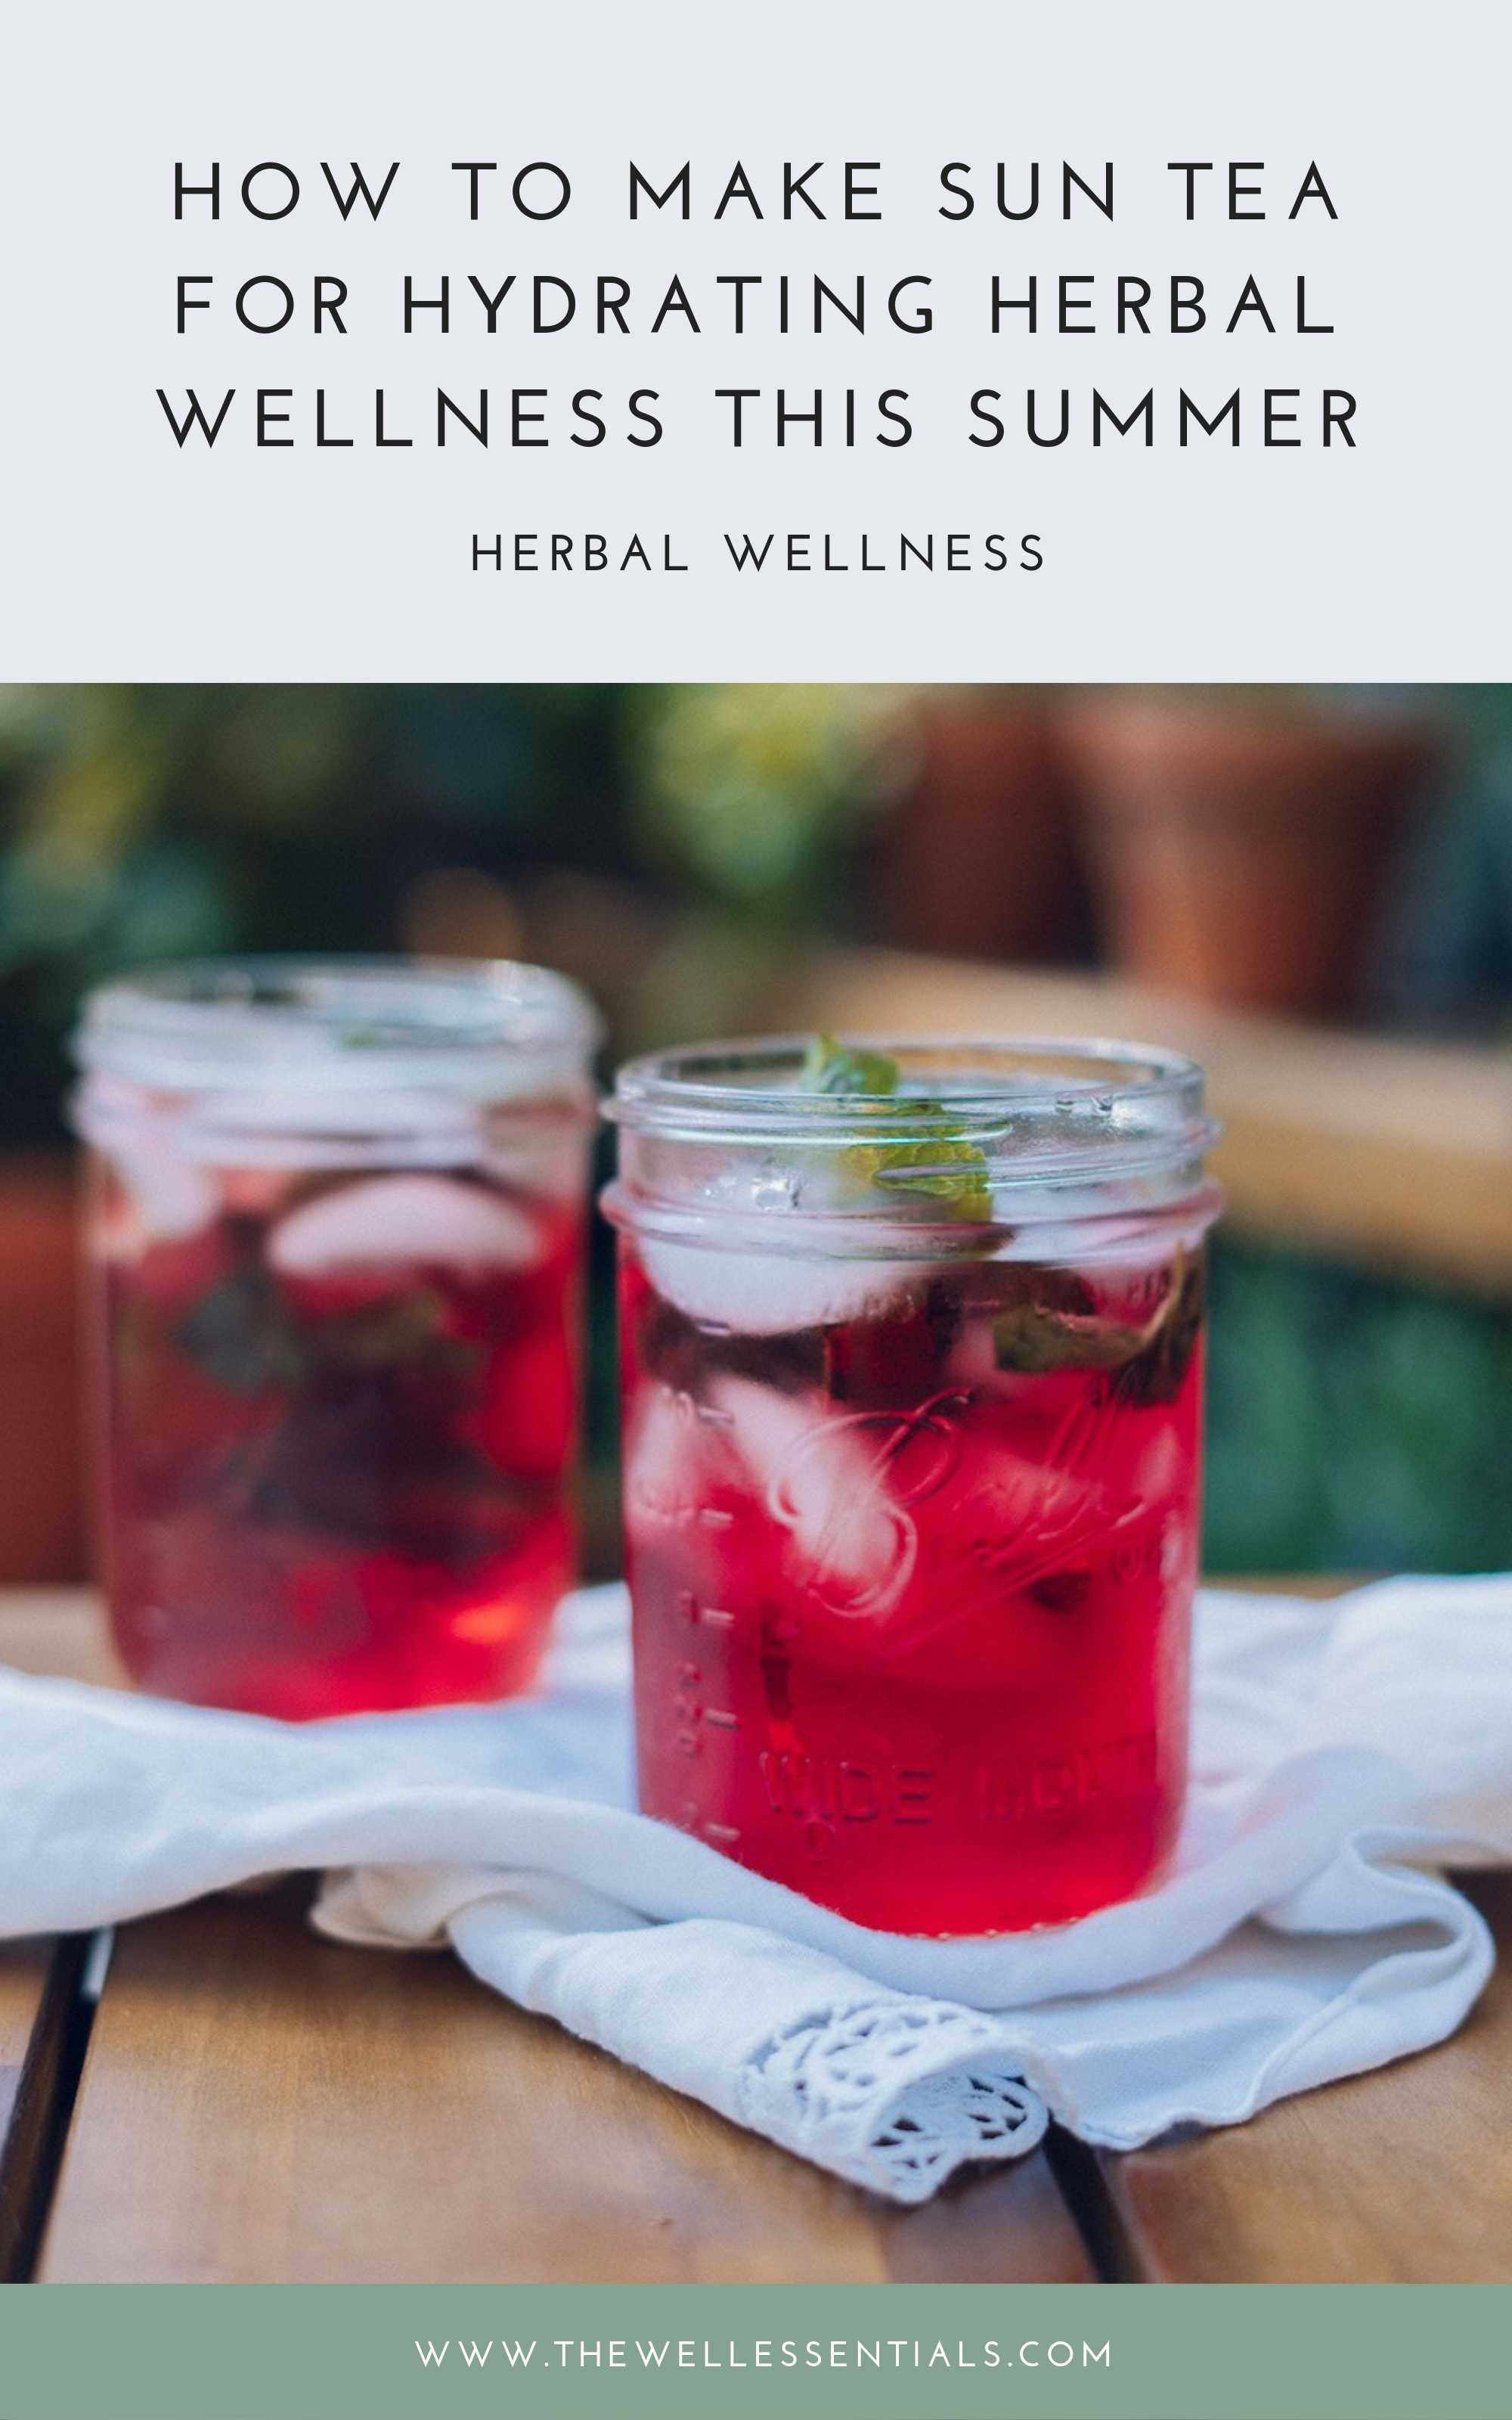 How To Make Sun Tea For Hydrating Herbal Wellness This Summer